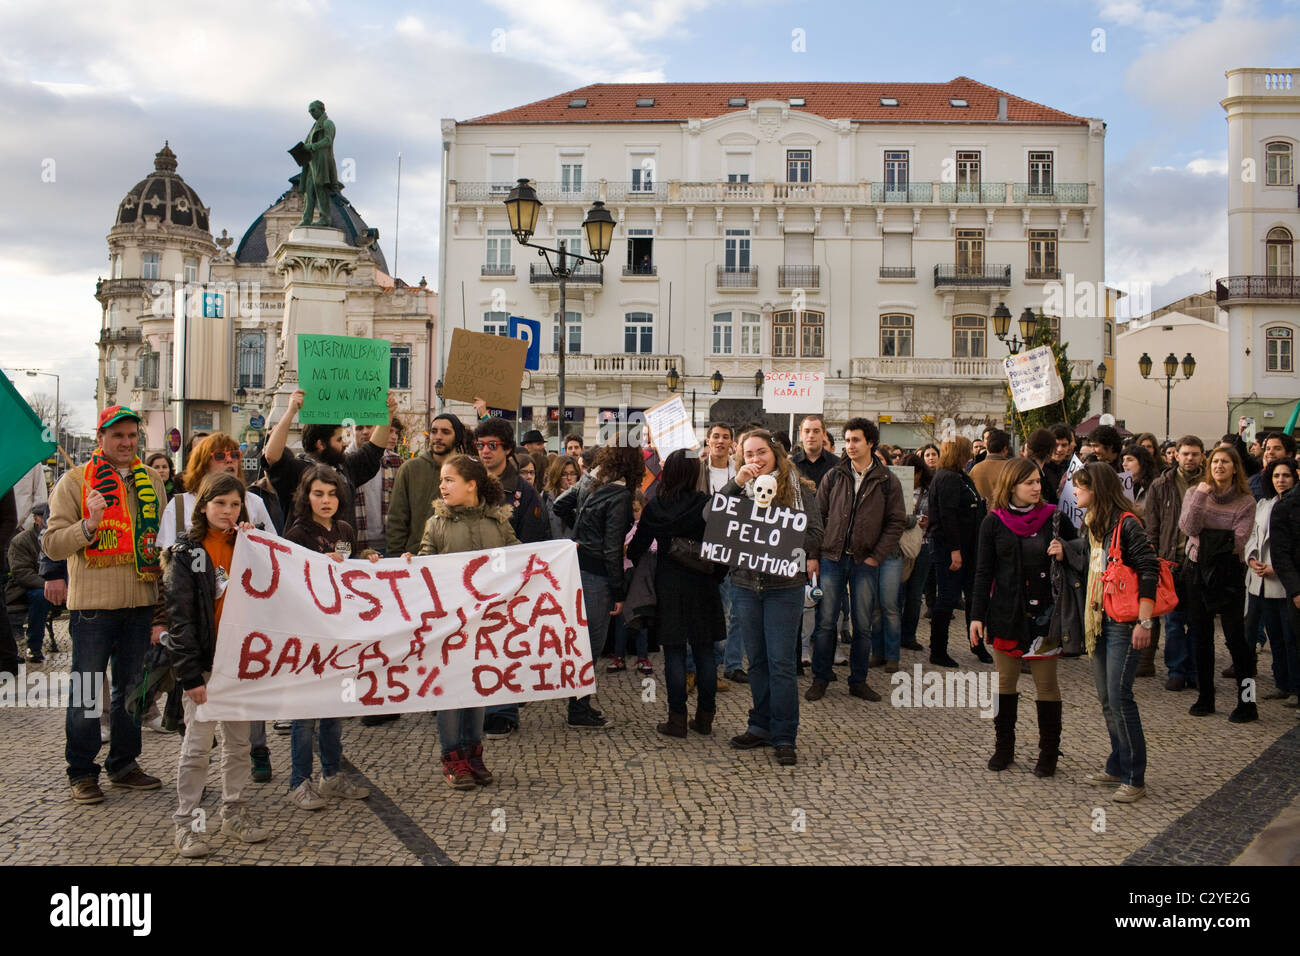 Anti-bank, pro-jobs protest in Coimbra, Portugal - Stock Image